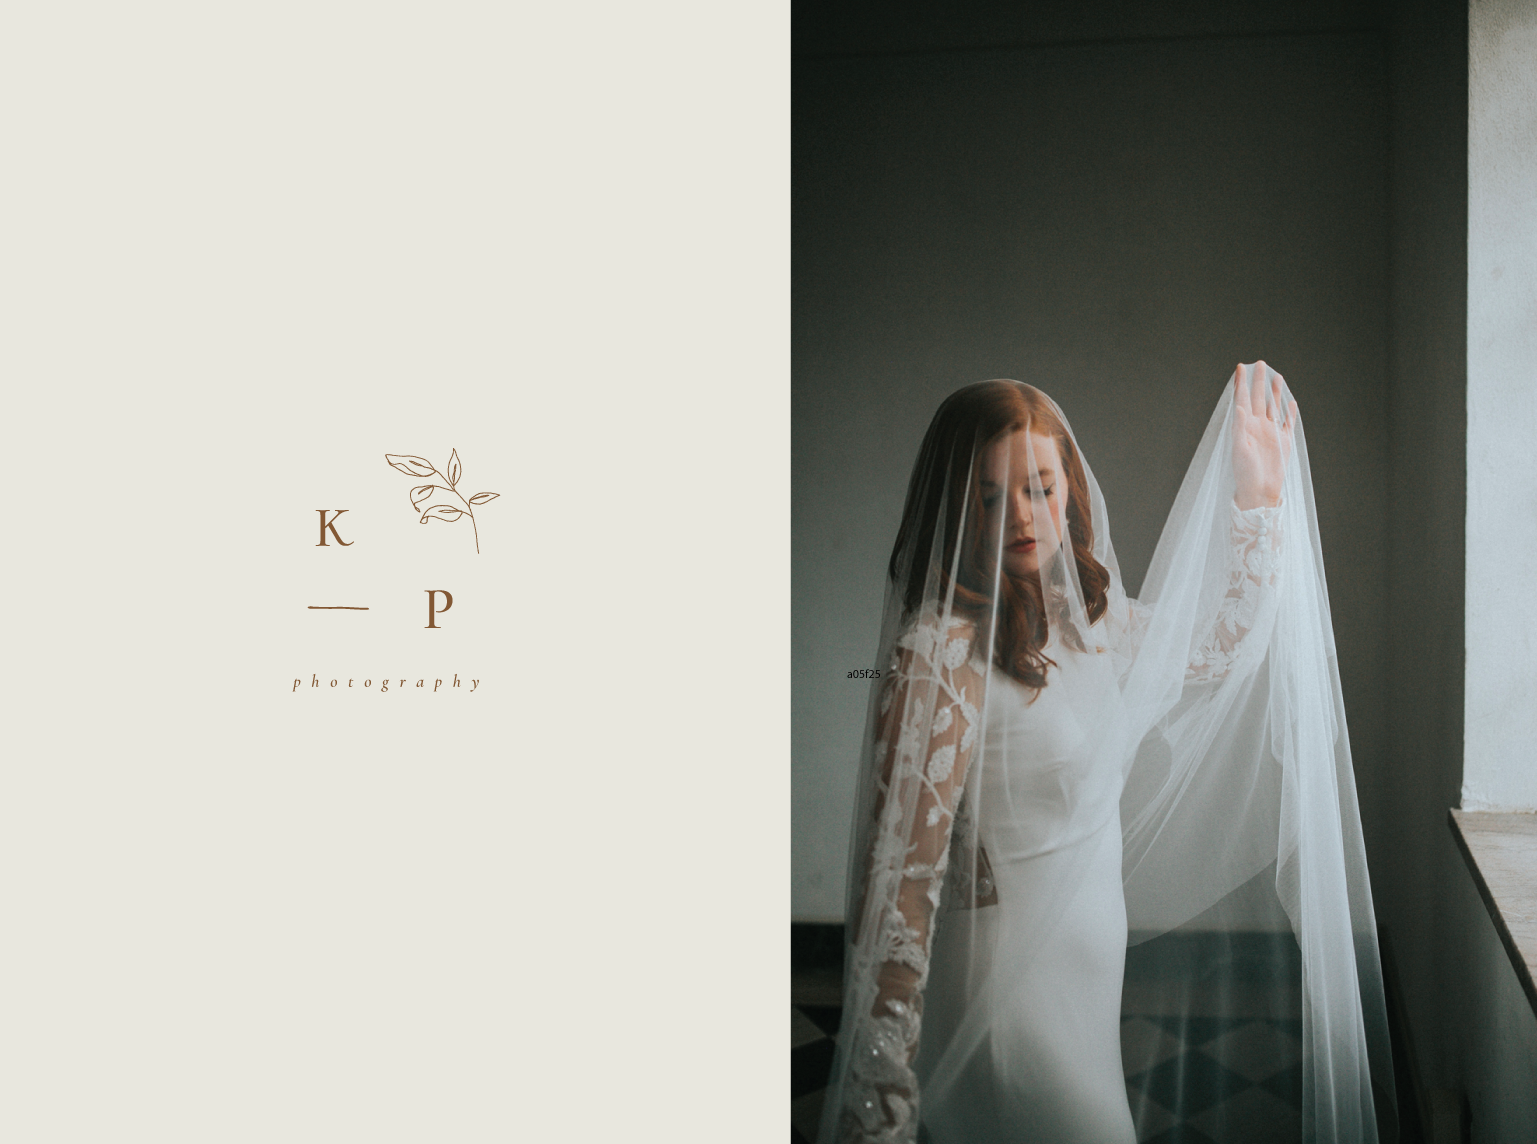 KP-Cover.png